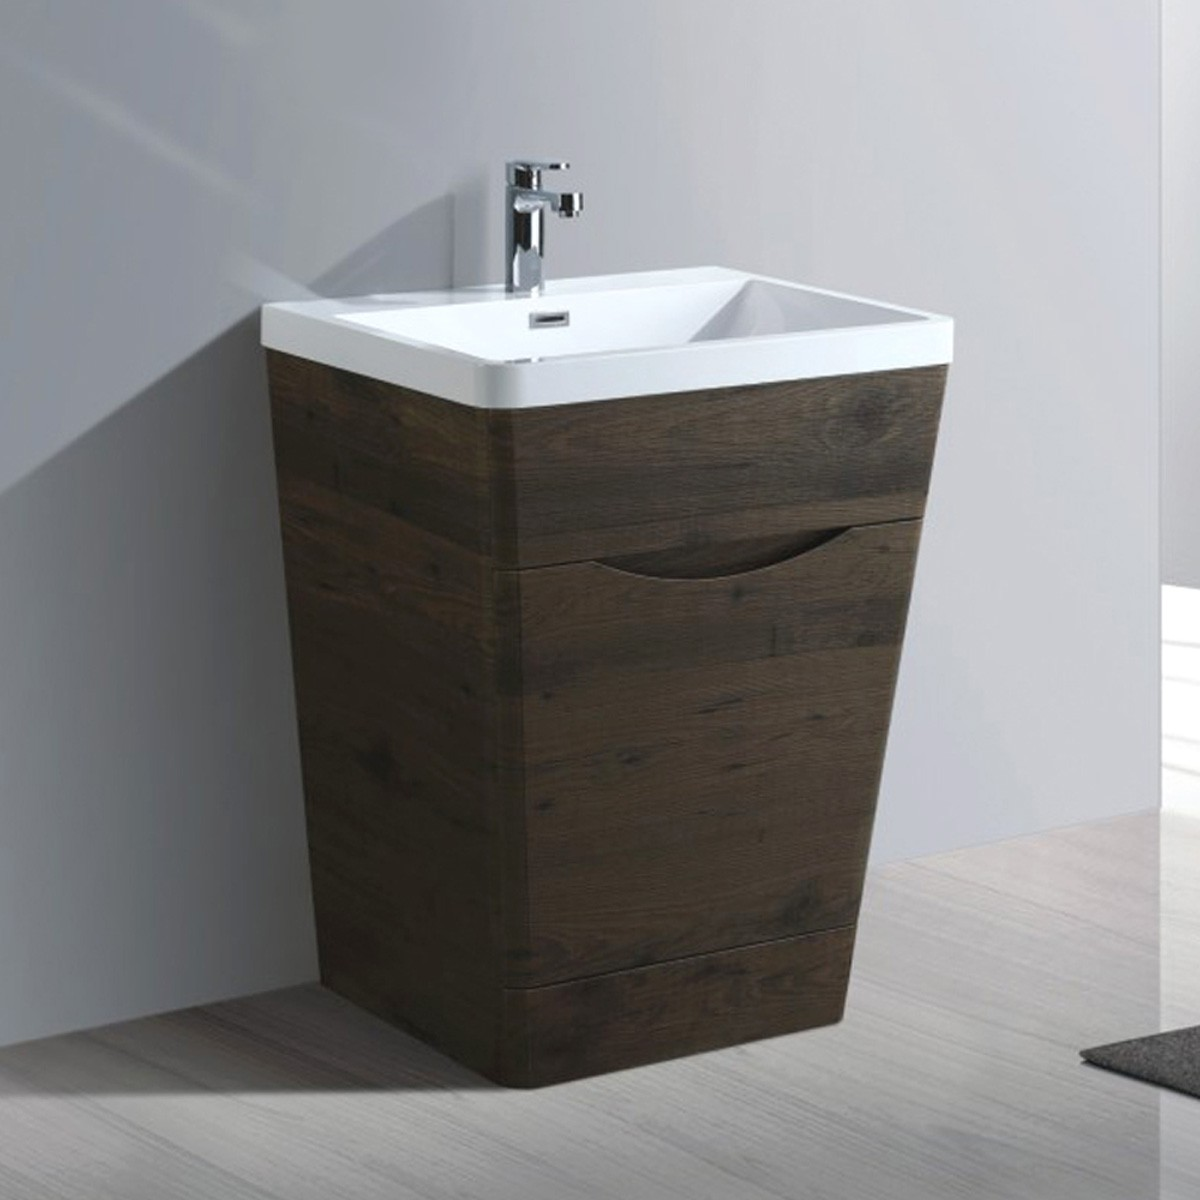 26 In. Bathroom Vanity with Basin (MY6501-V)